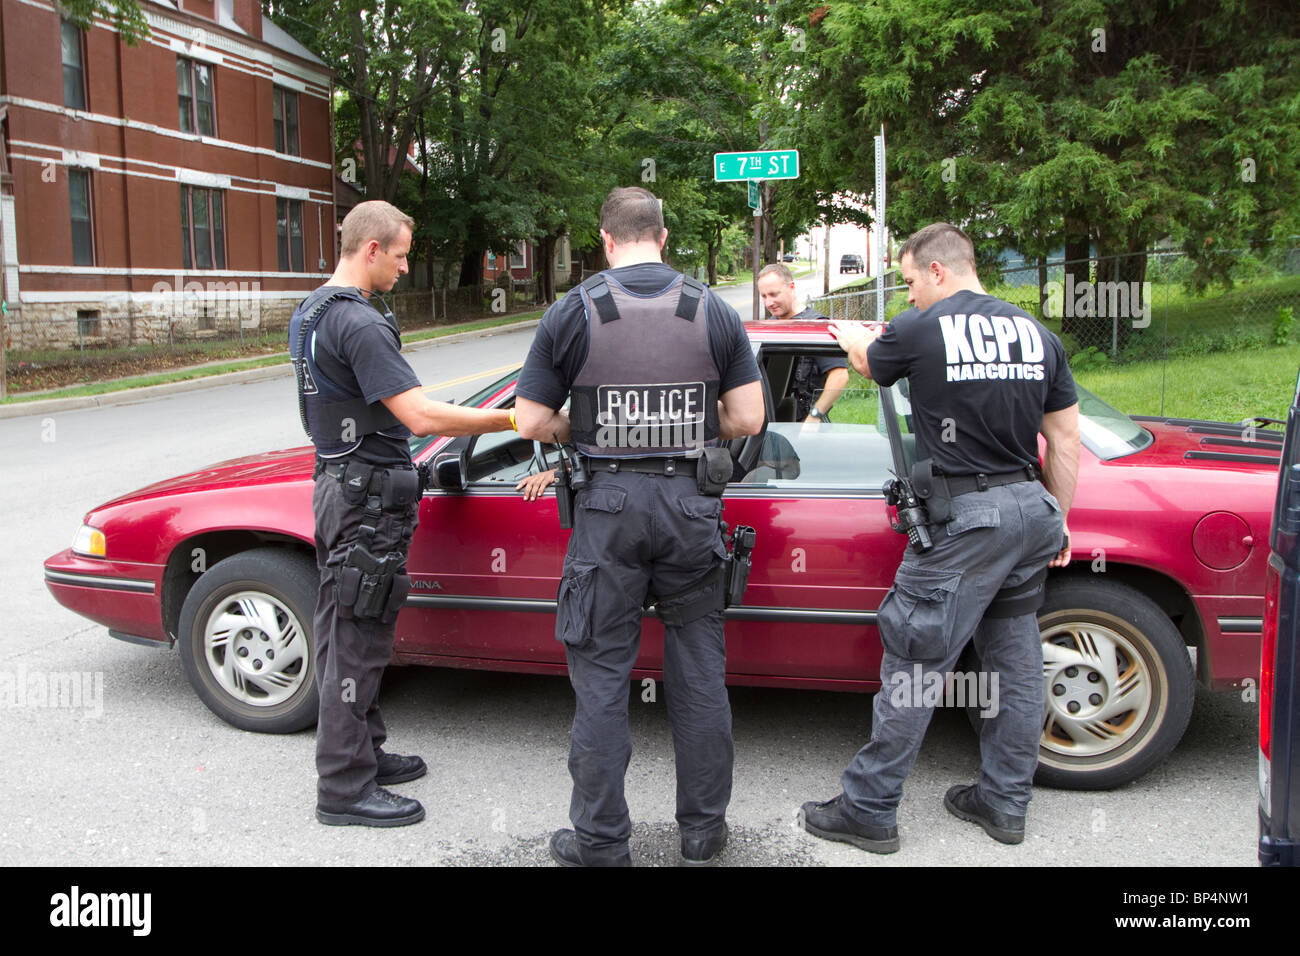 Police officers from tactical team talking to an individual found sleeping in a vehicle in an intersection. Kansas - Stock Image